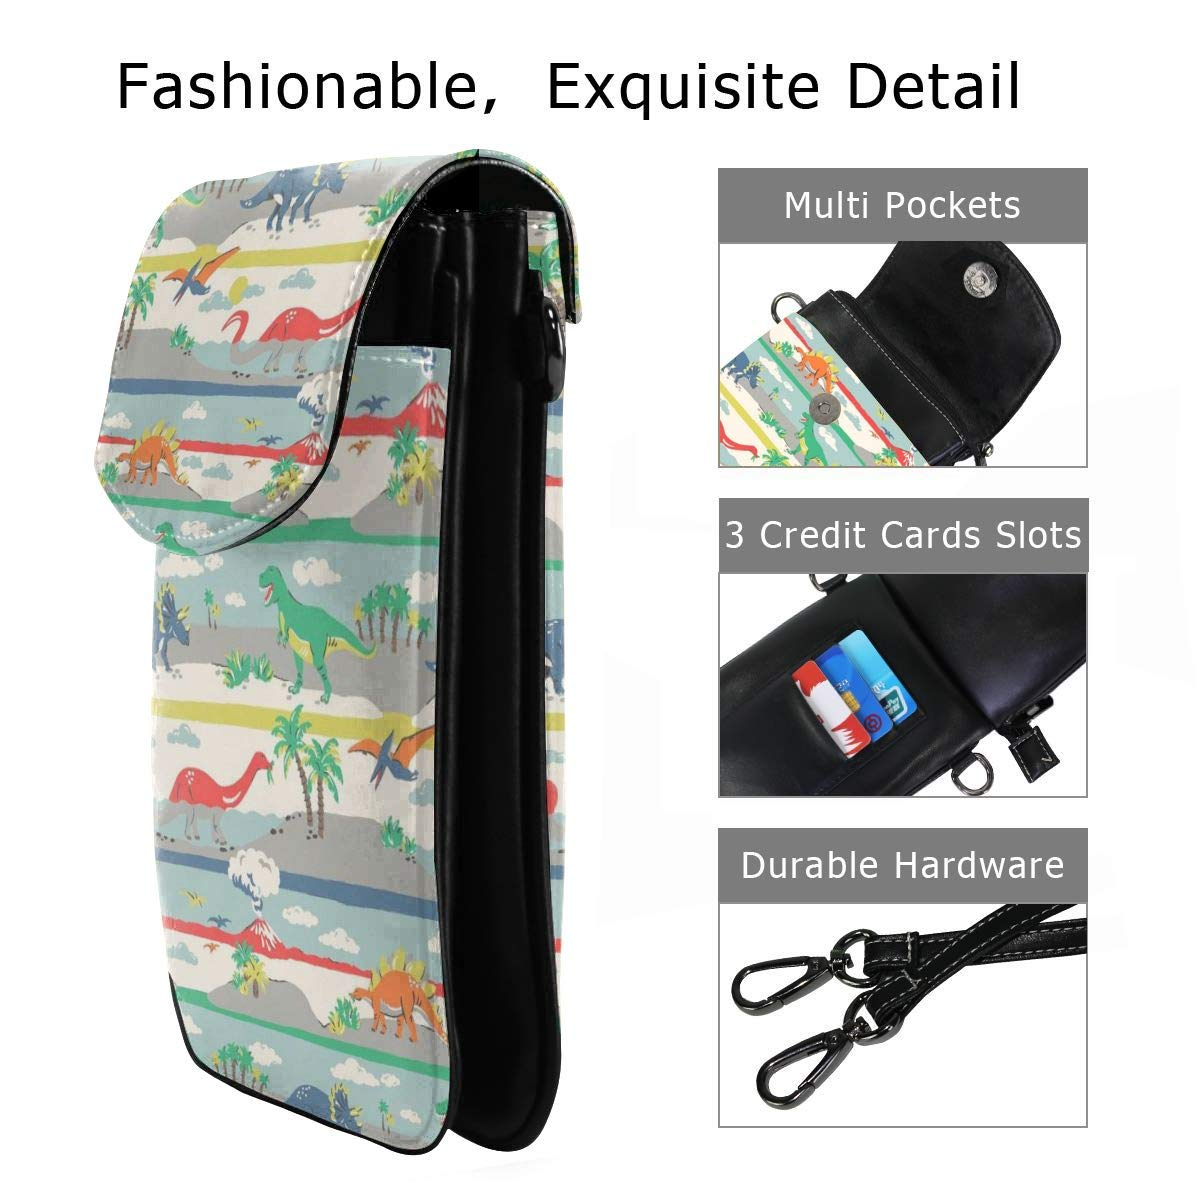 Hsanfwnzl Small Cell Phone Purse Dinosaur Crossbody Bags with Shoulder Strap Coin Purse Wallet for Women,Girls